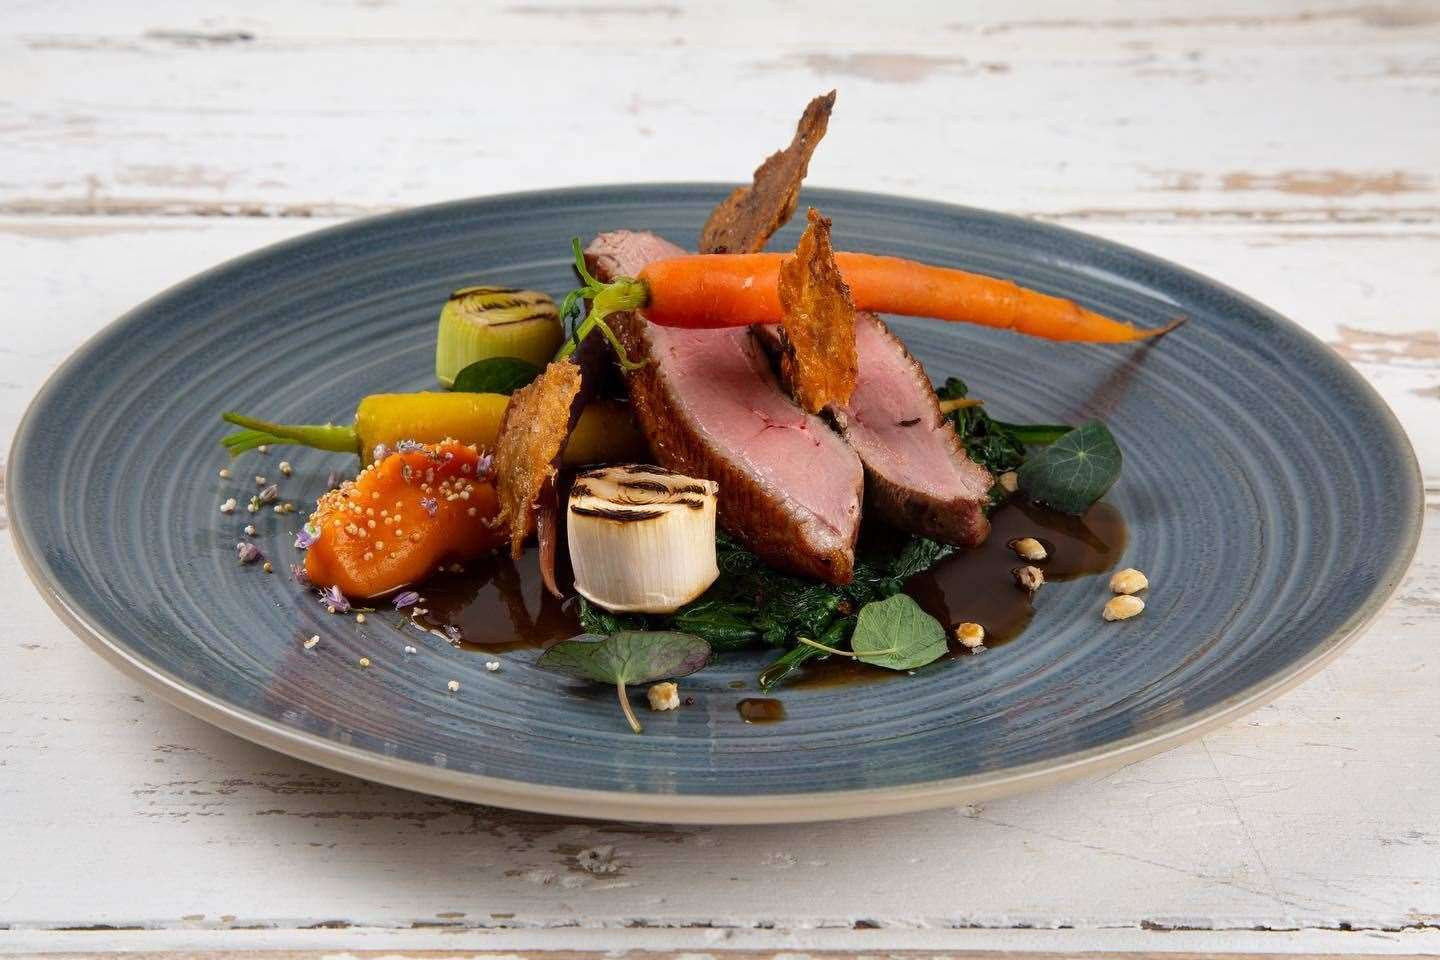 Robbie's take on Duck a l'Orange - marmalade glazed duck and vegetables. Picture: Only Food and Courses